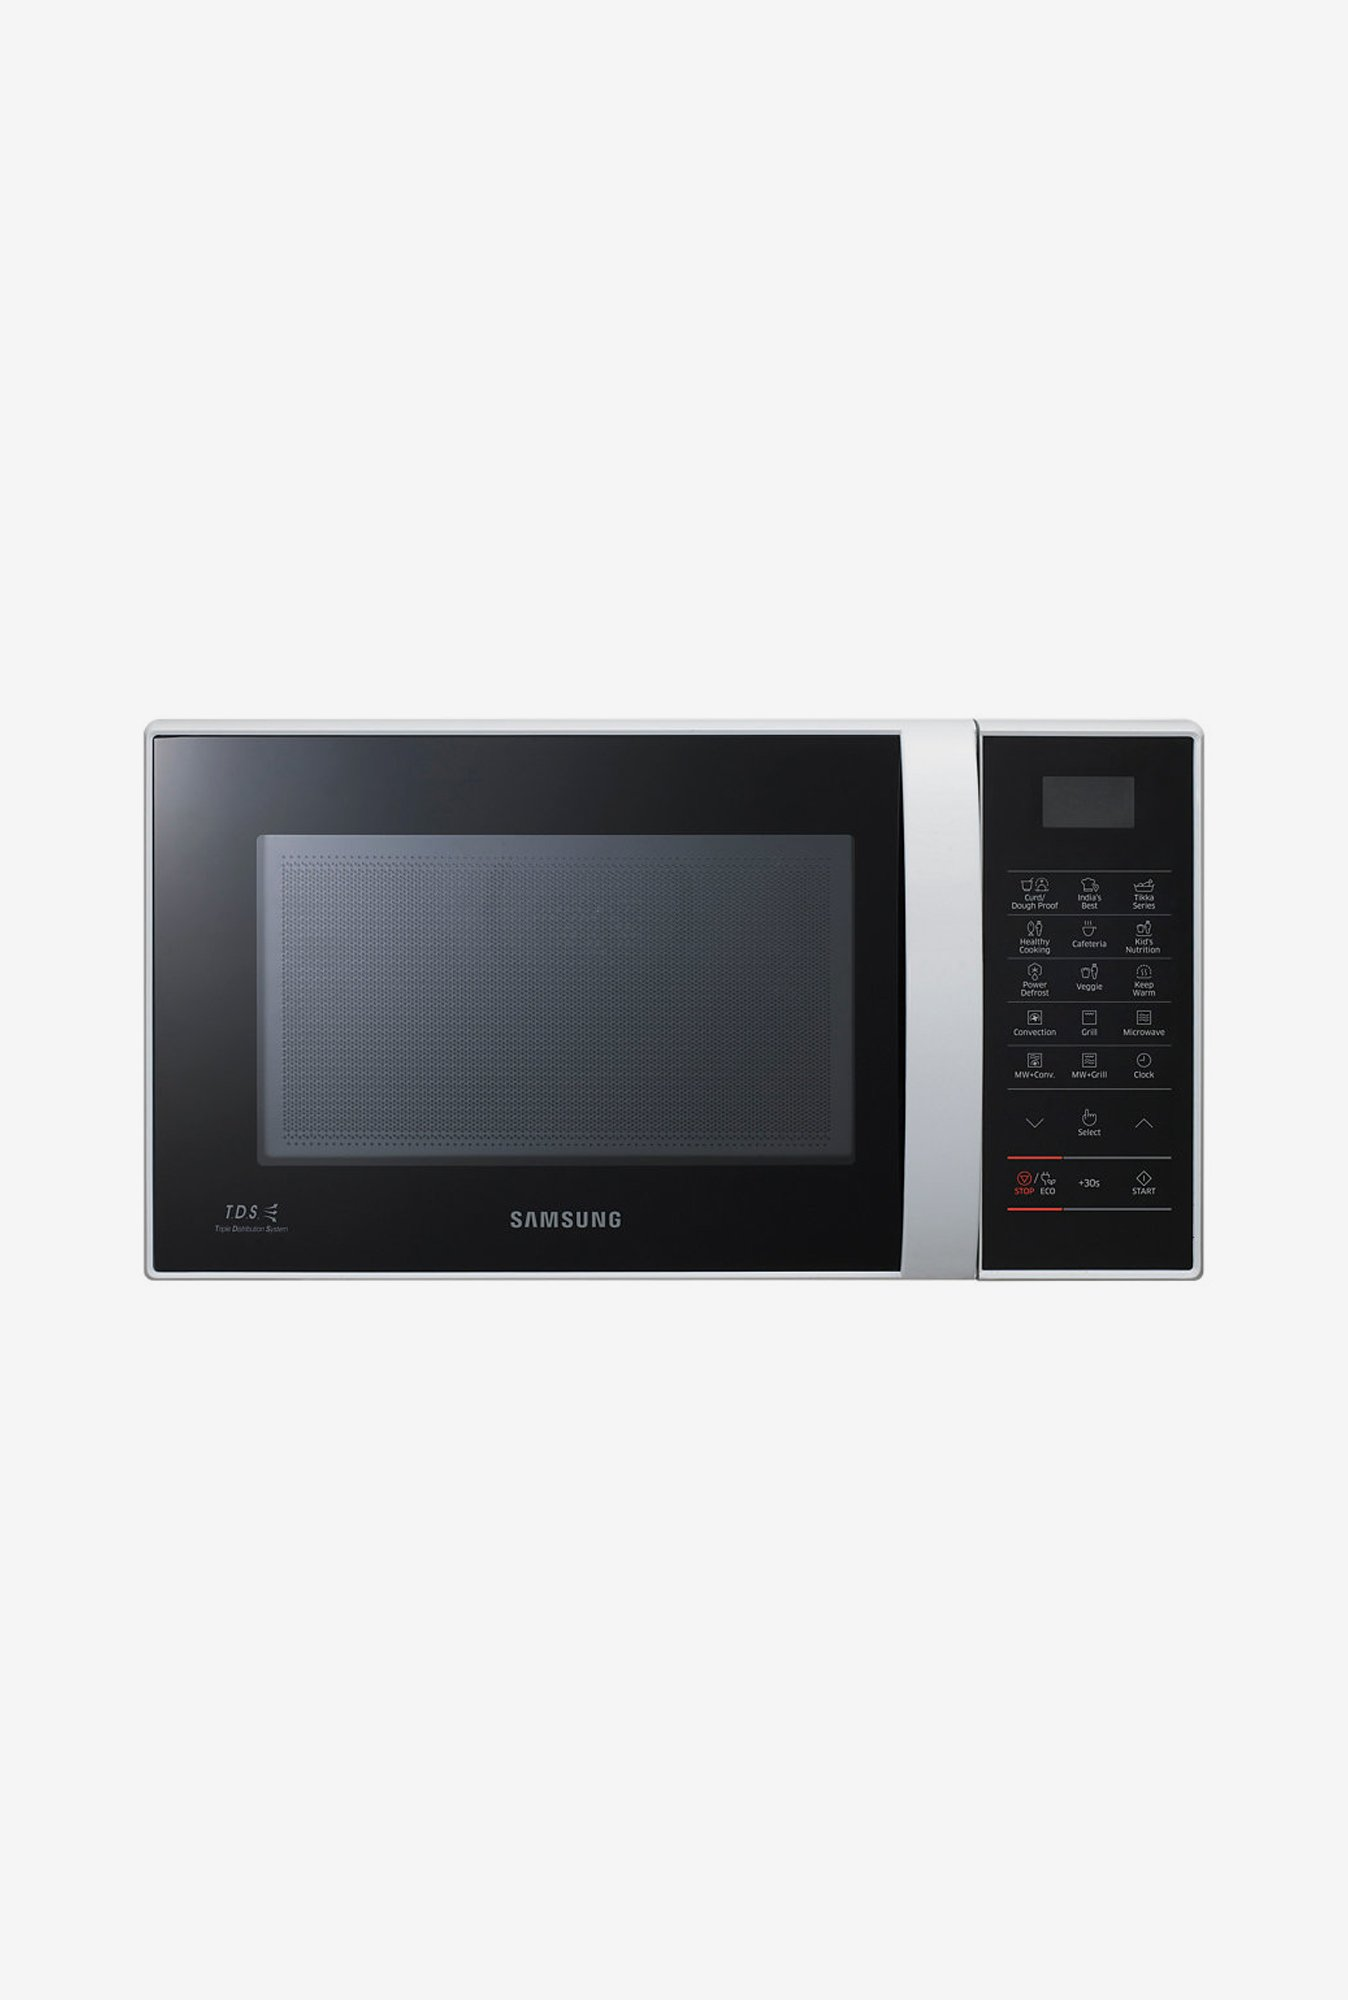 Samsung CE76JD 21 L Convection Microwave Oven (Black)